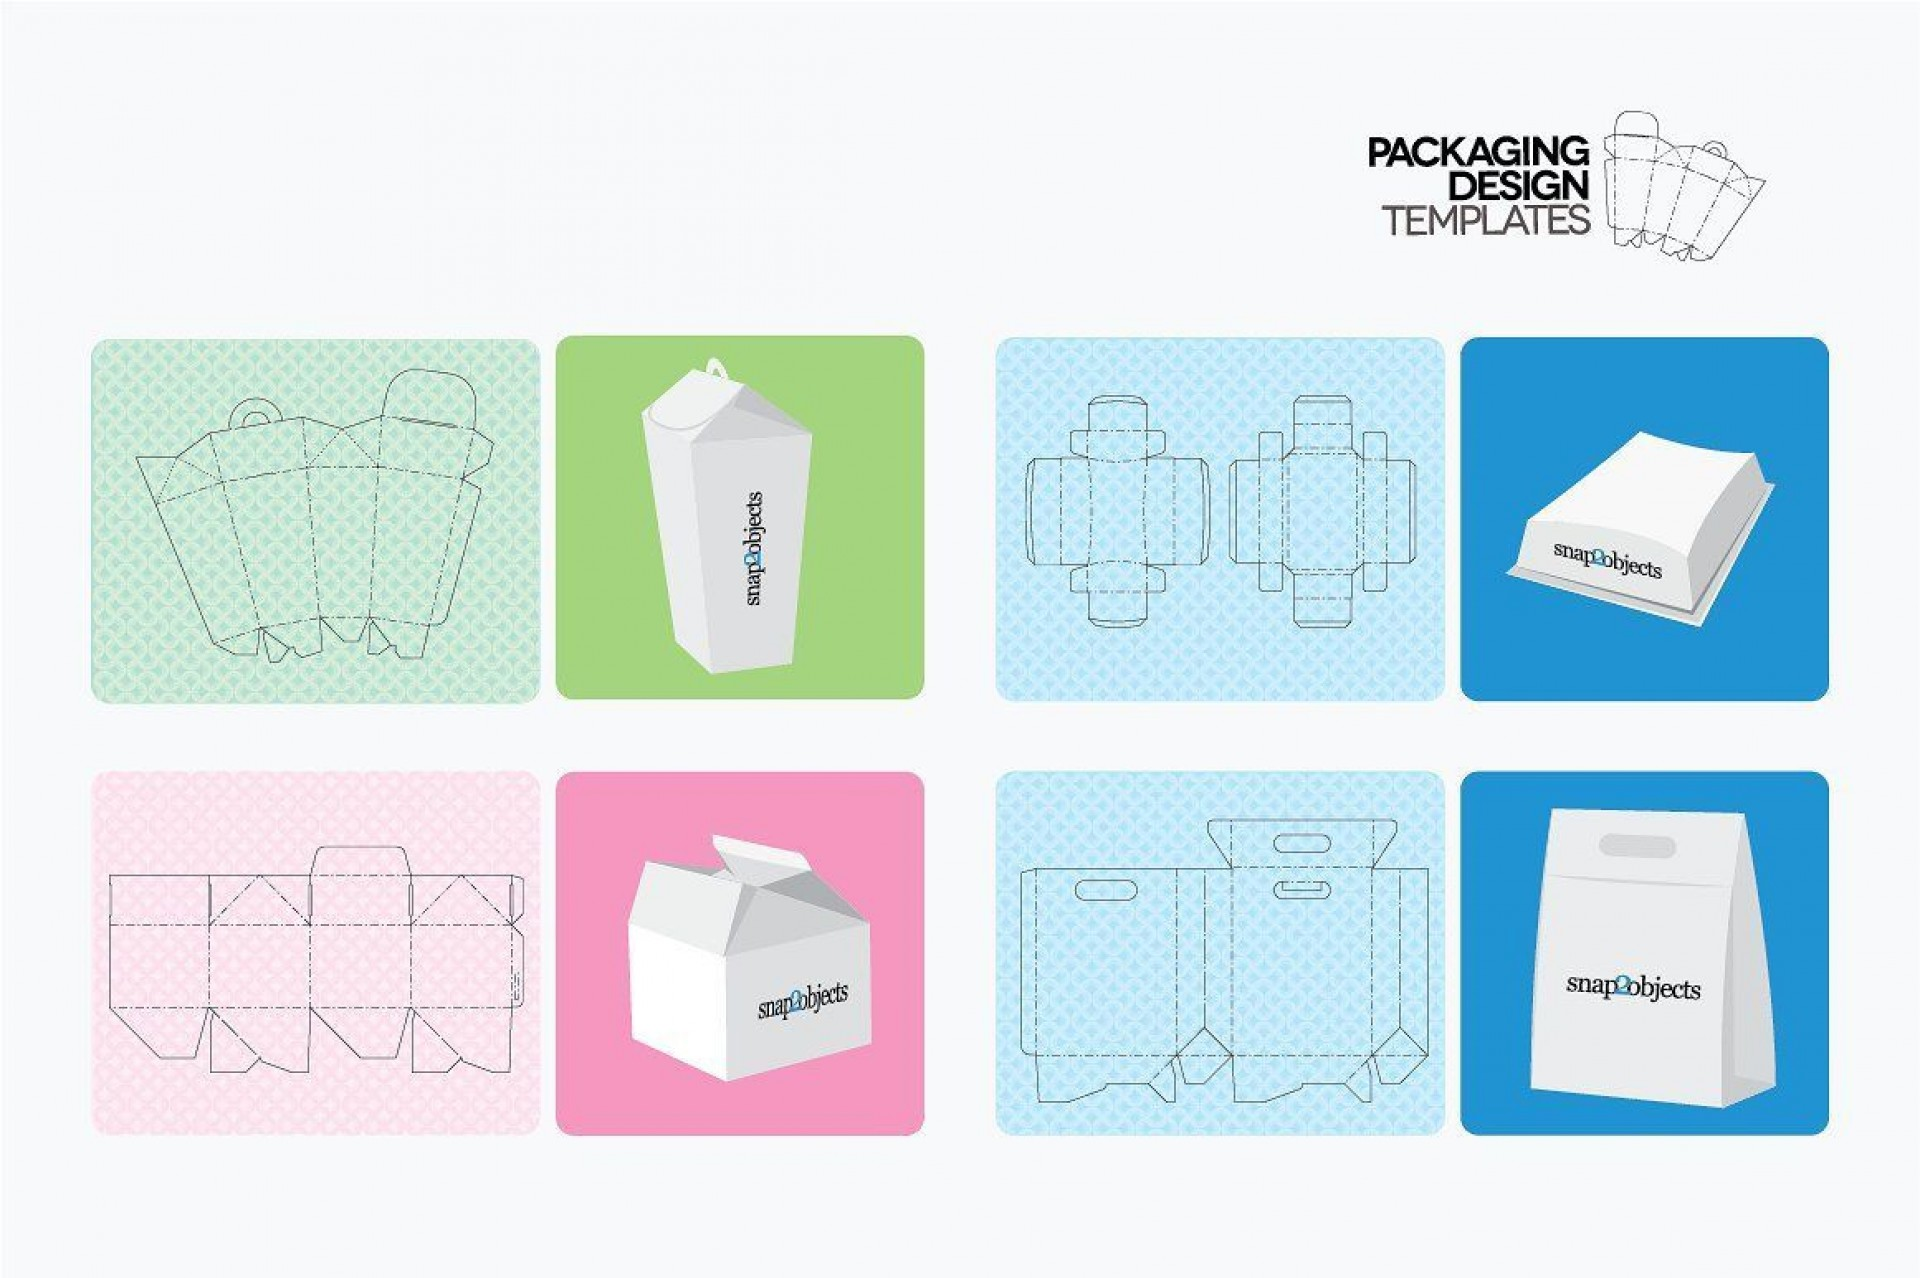 003 Wonderful Product Packaging Design Template  Templates Free Download Sample1920